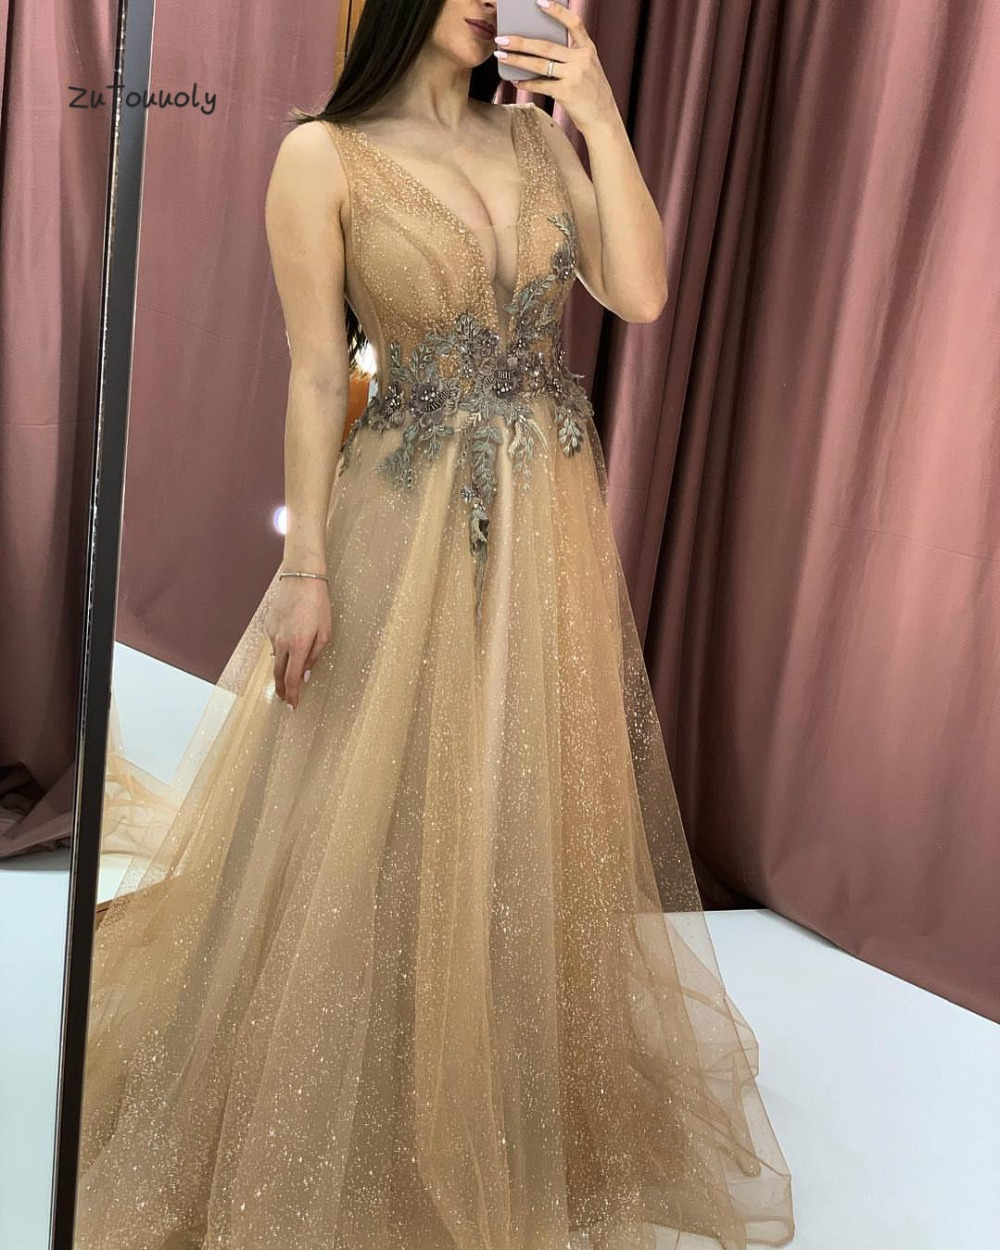 US $123.07 21% OFF|Fashion Gold Evening Dress Plus Size Deep V Neck Long  Evening Wear Appliques Prom Party Dresses For Chubby Chic Graduation  Dress-in ...